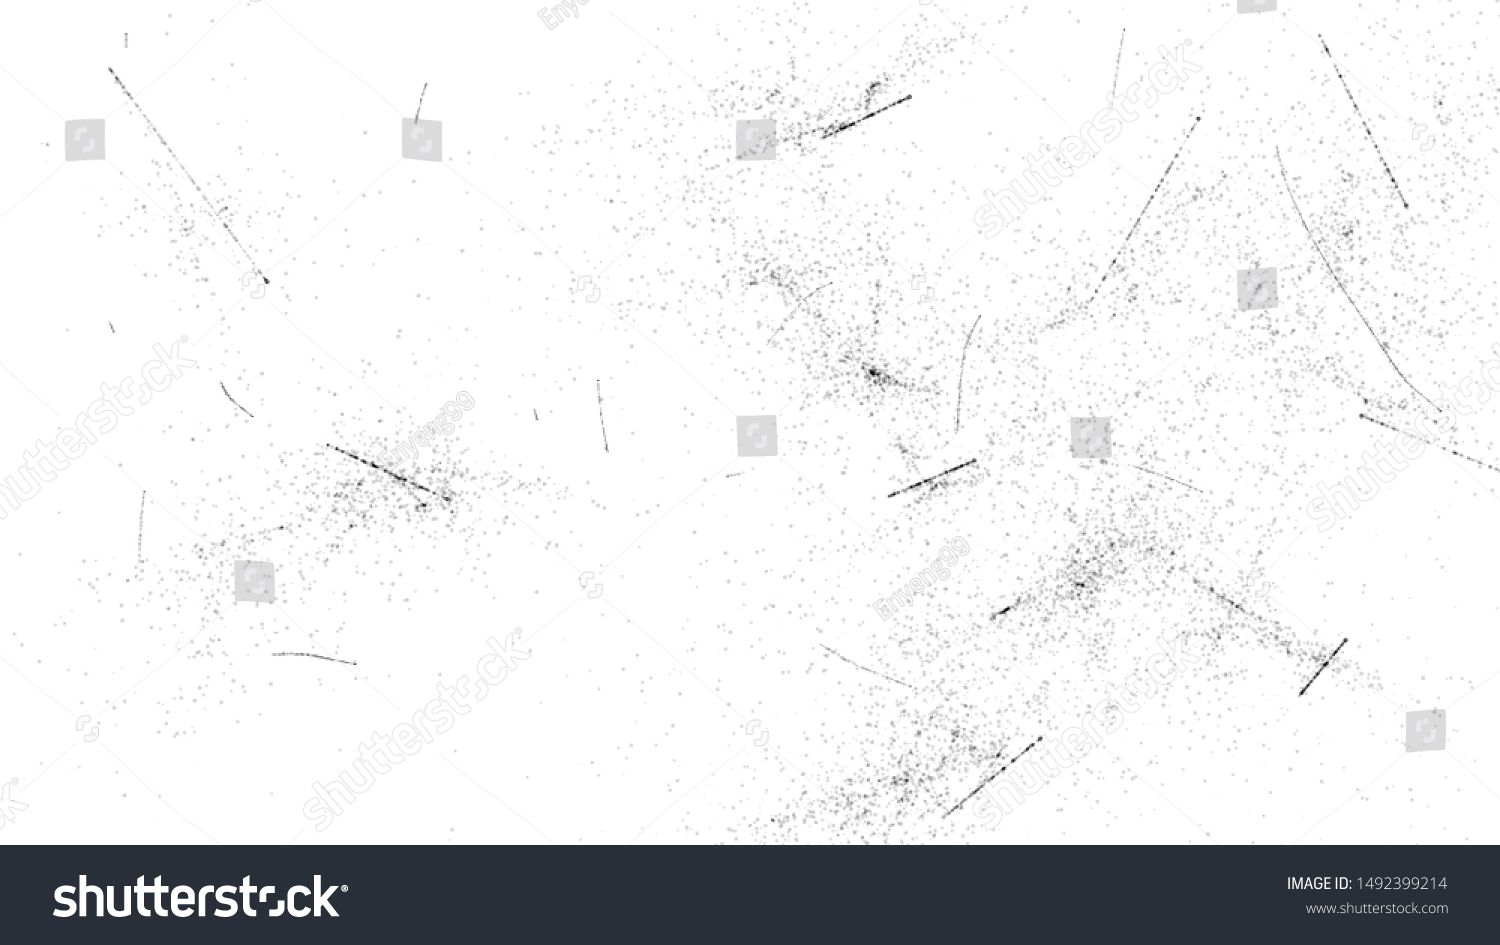 Pin On Textures Backgrounds